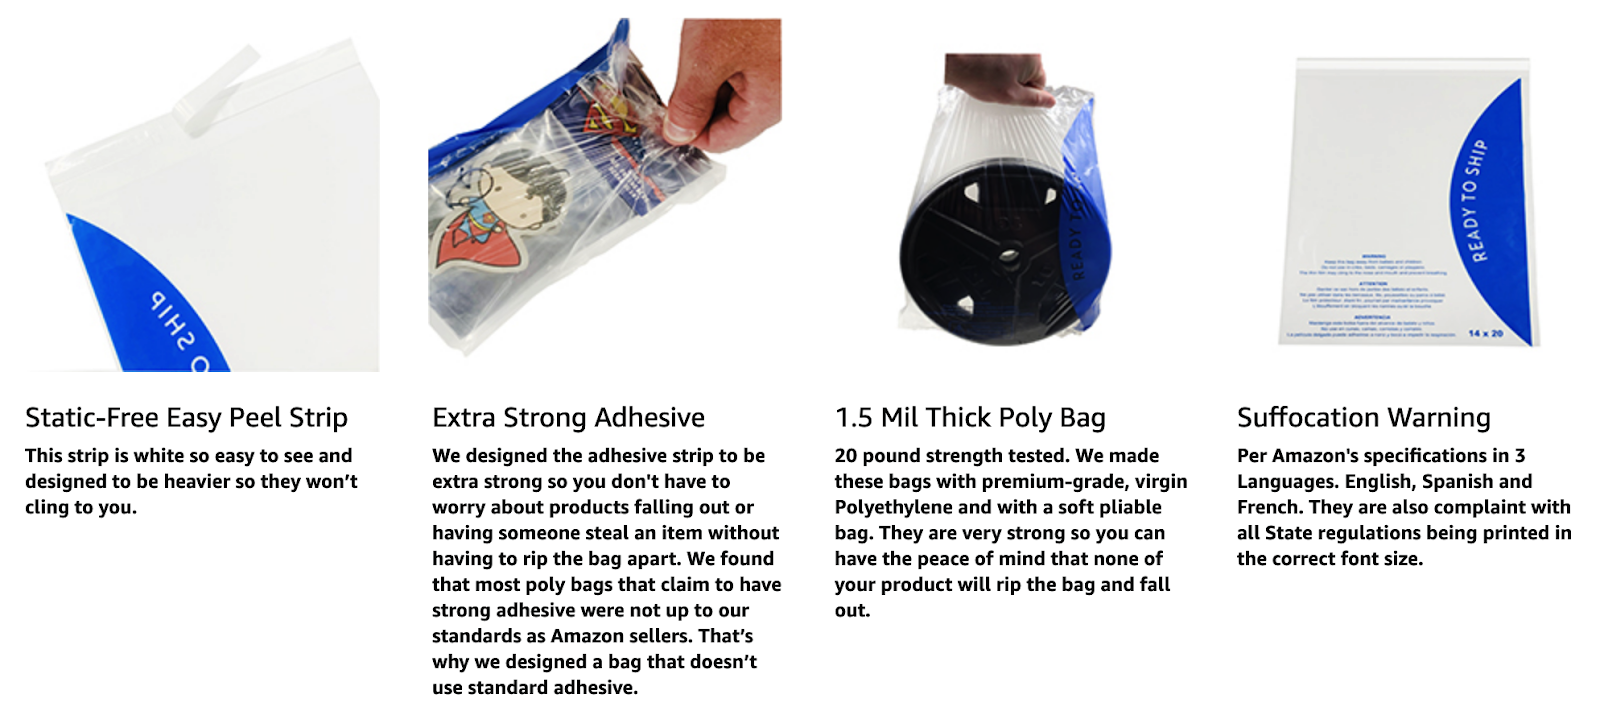 Strong Adhesive Strip with Suffocation Warning GennZee 4 Size Bundle 100 Each Clear Poly Bags